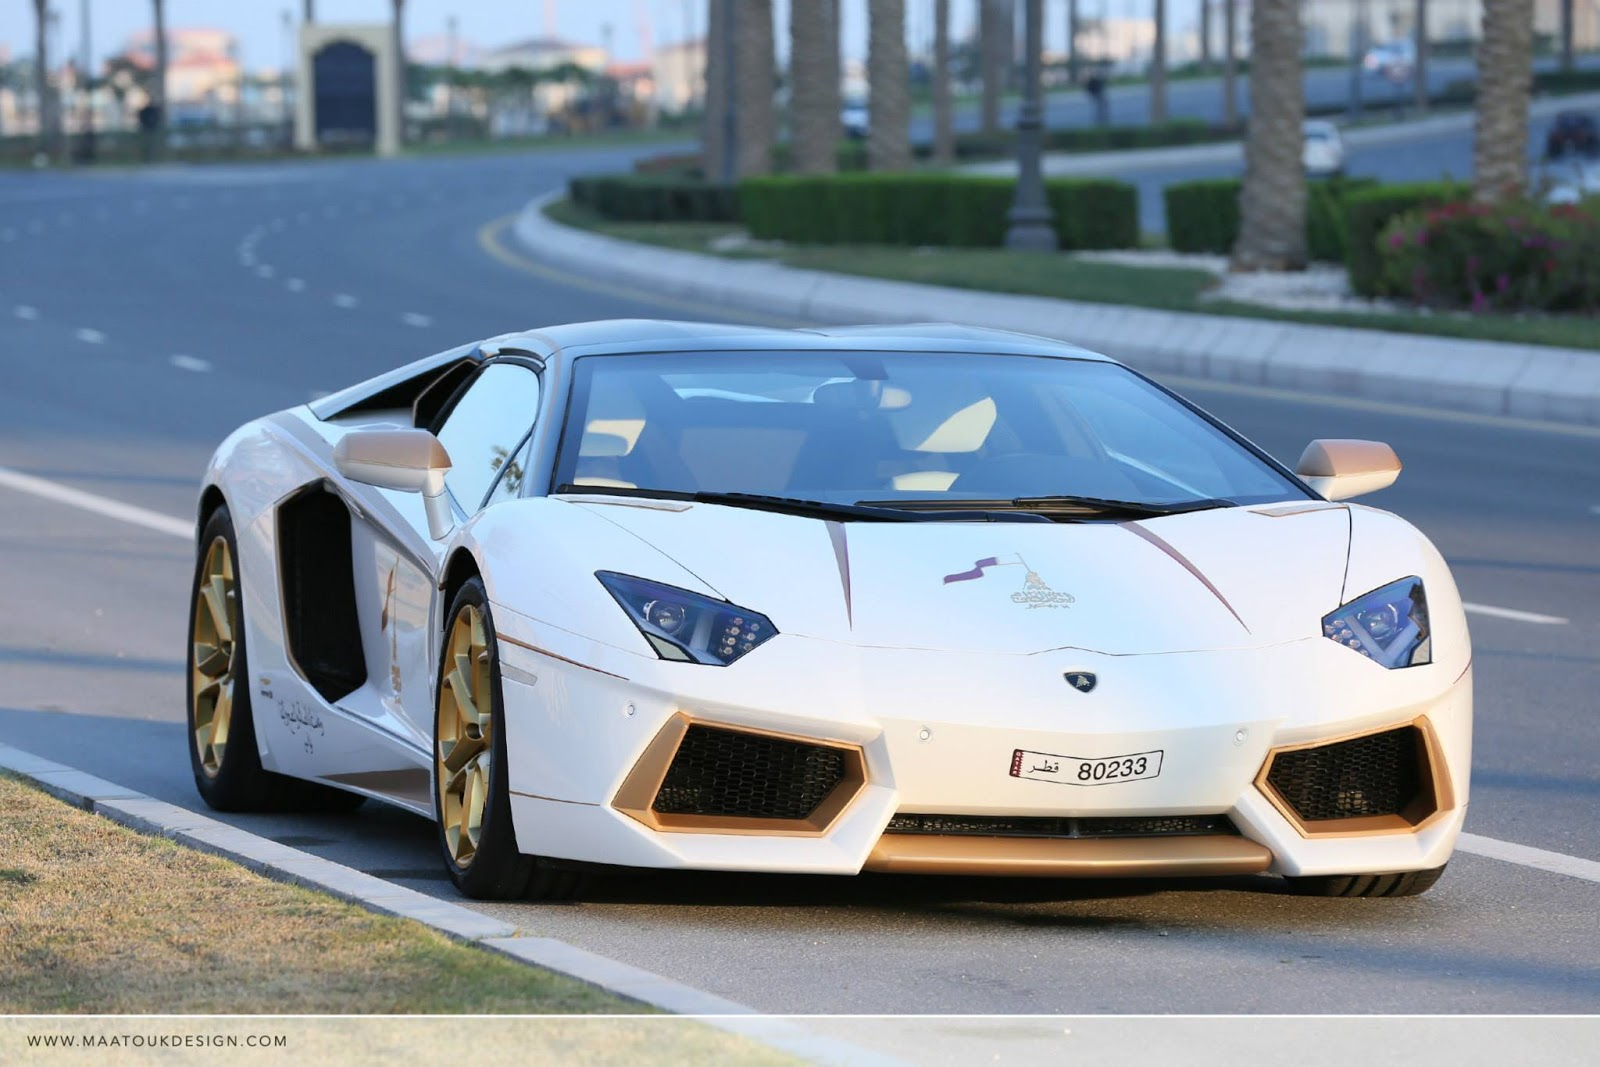 Meet The One Off Gold Plated Lamborghini Aventador